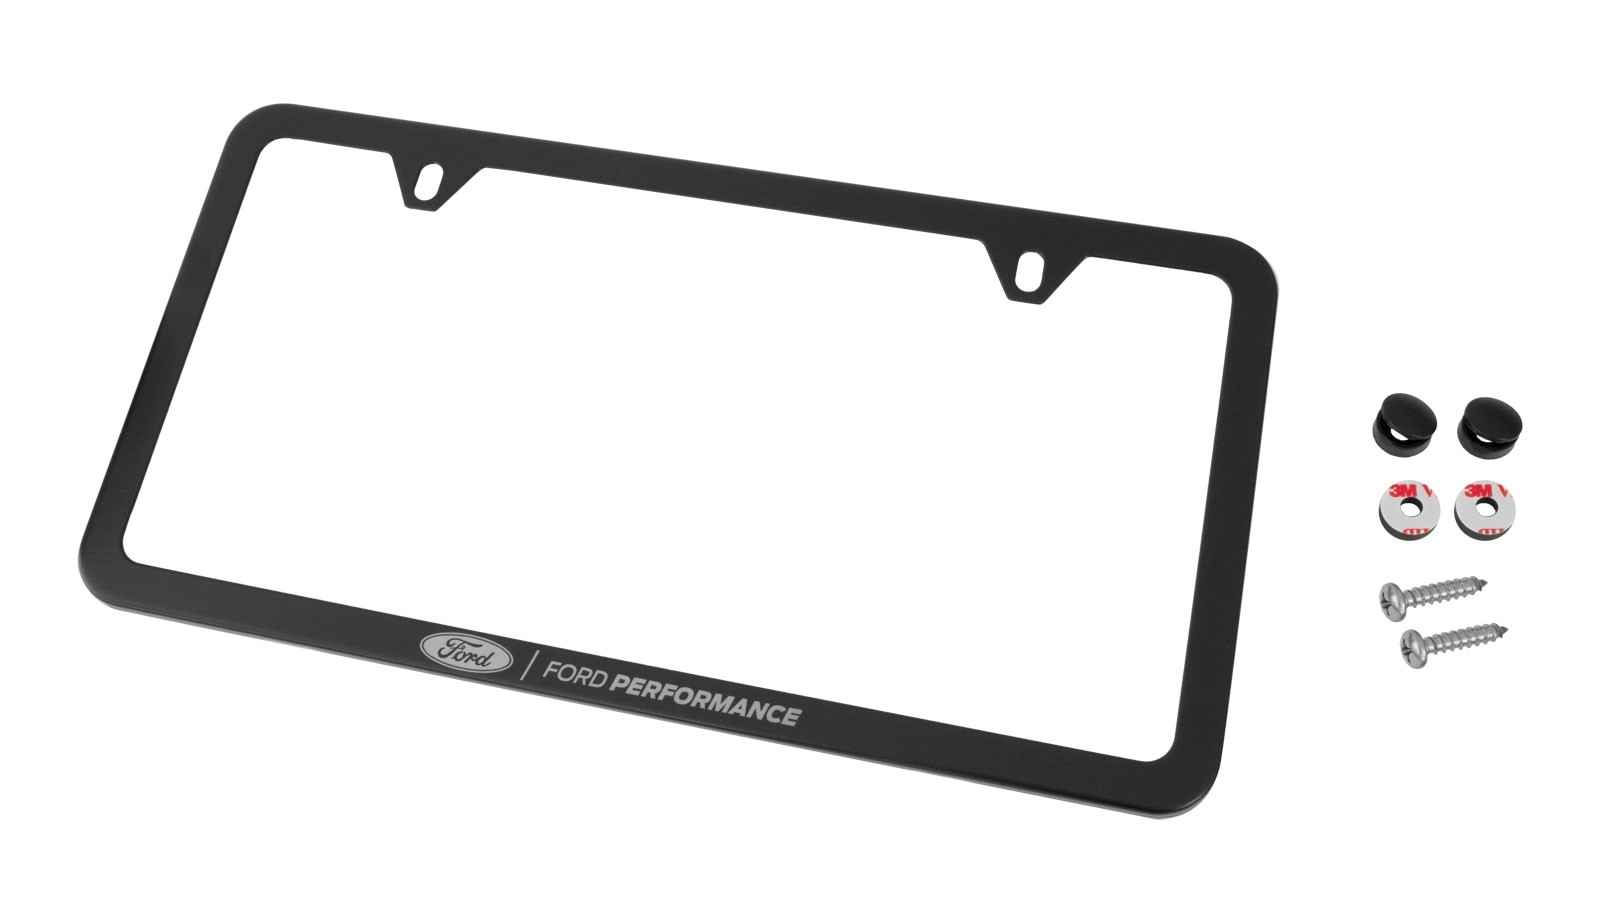 Ford Performance License Plate Frame - Black Stainless Steel